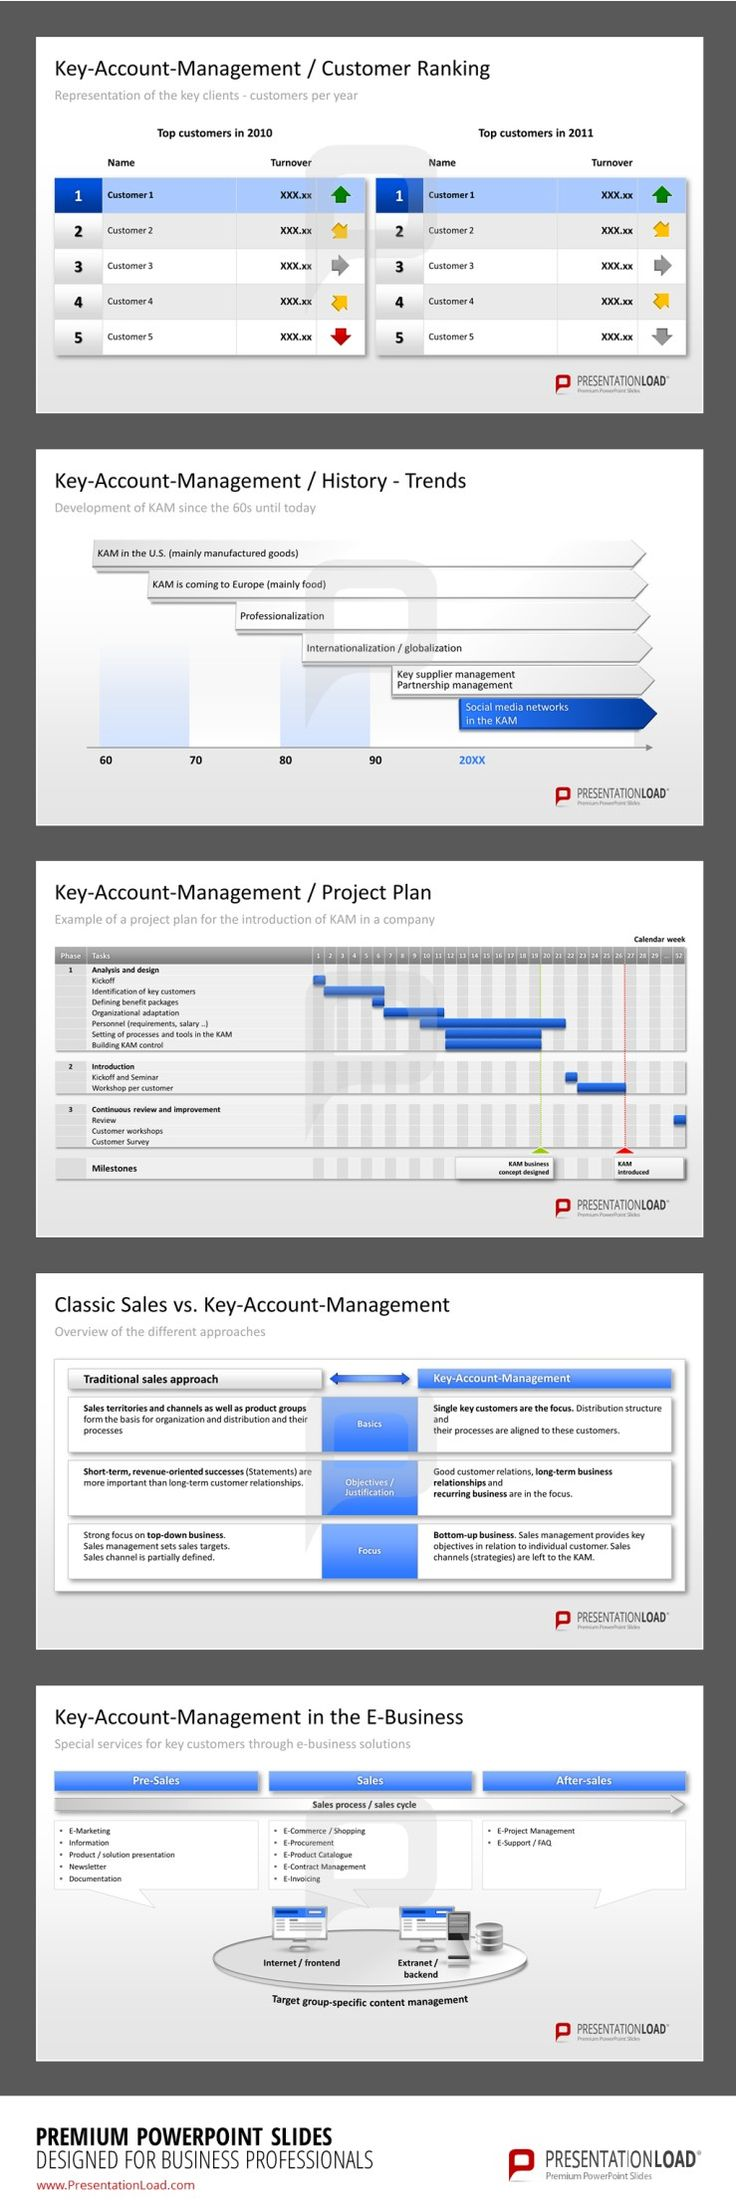 best images about key account management powerpoint key account management powerpoint presentation template presentationload presentationload